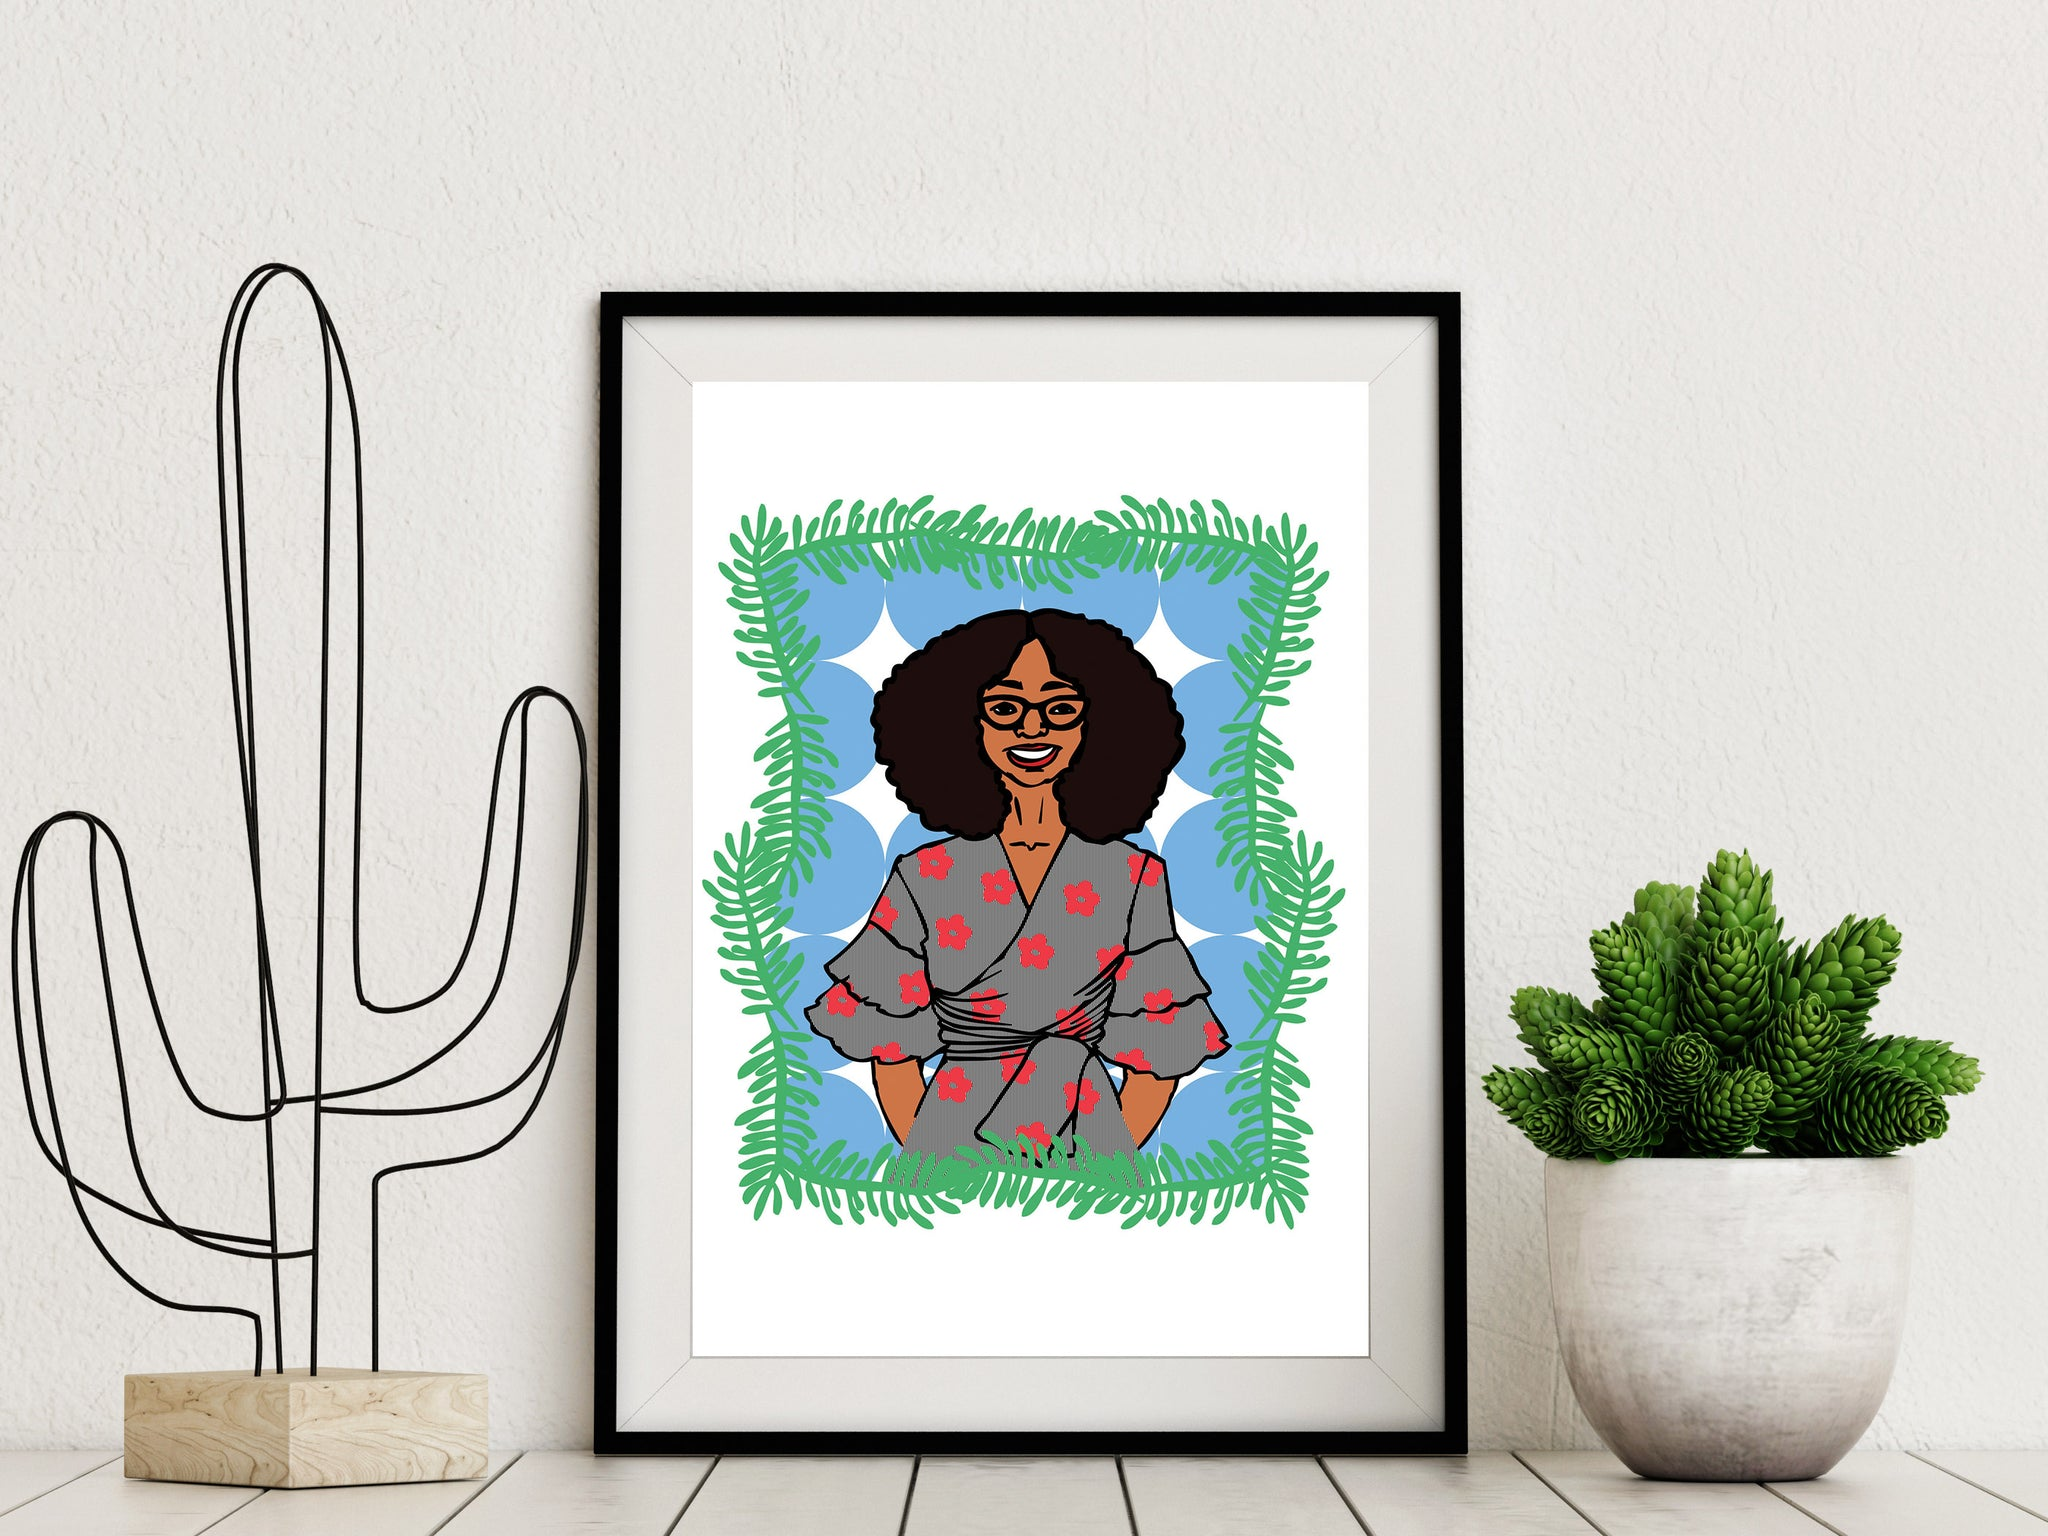 Framed Custom Personal Illustrated Portrait Gift for Loved One by DorcasCreates